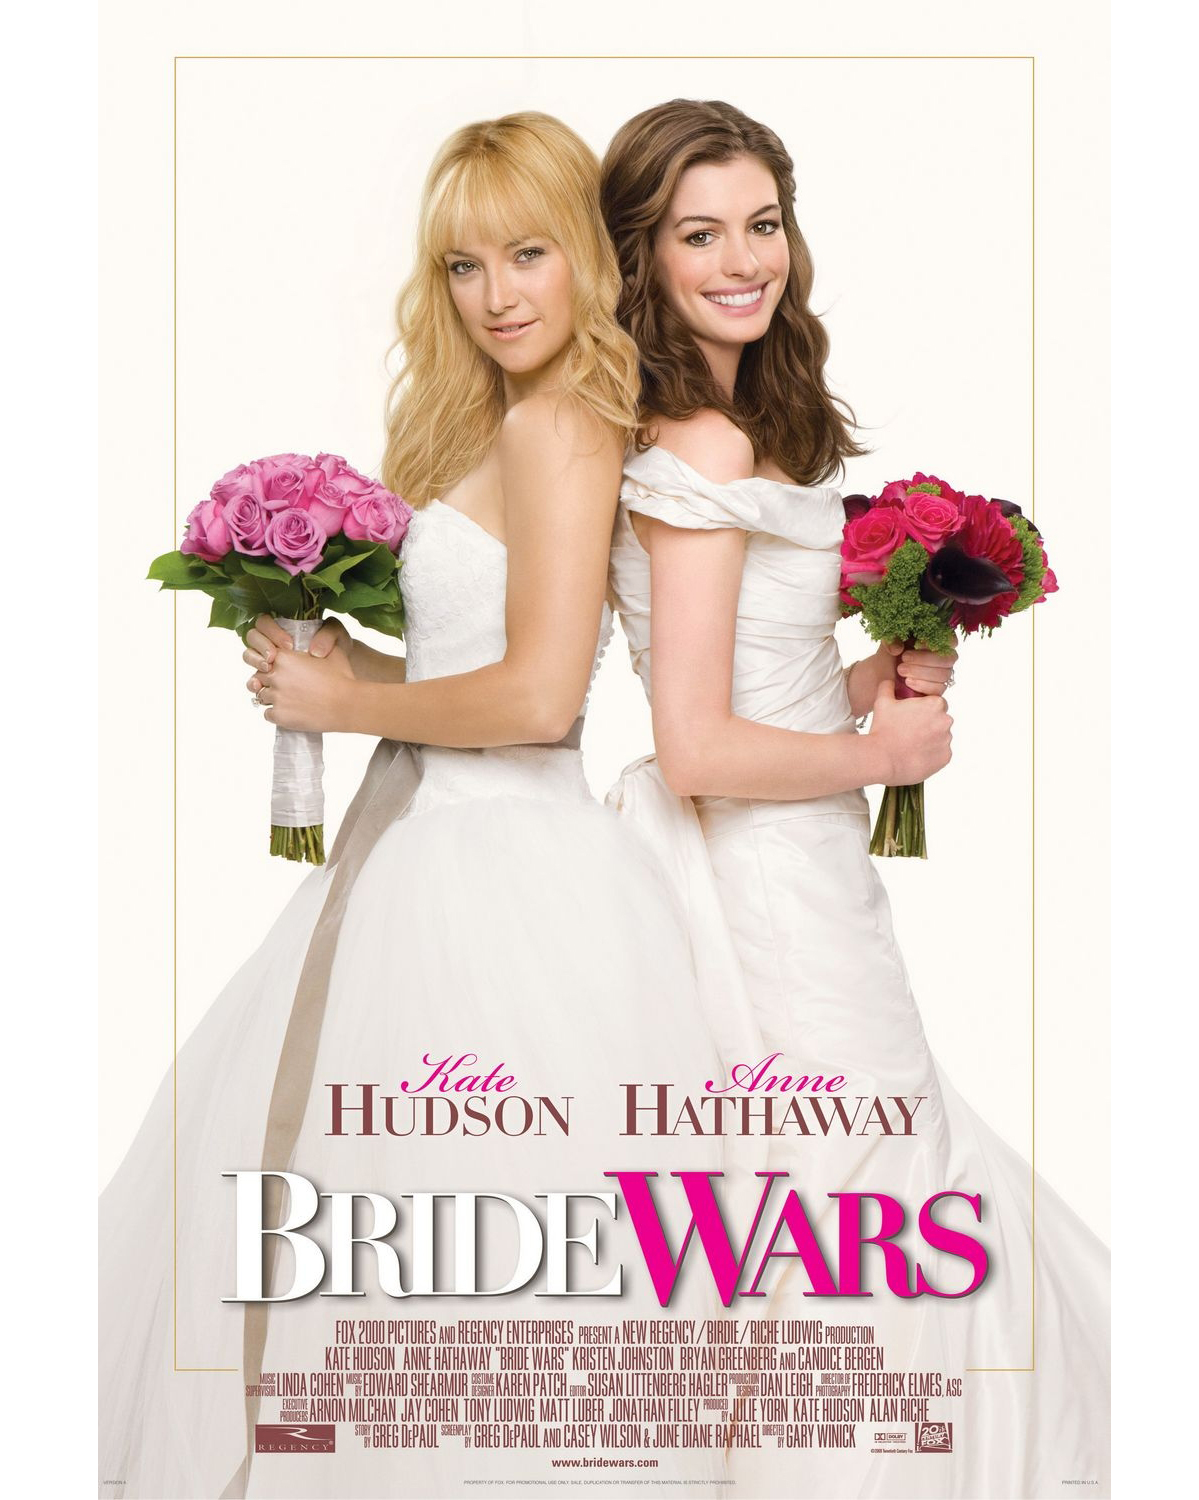 wedding-movies-bride-wars-1115.jpg